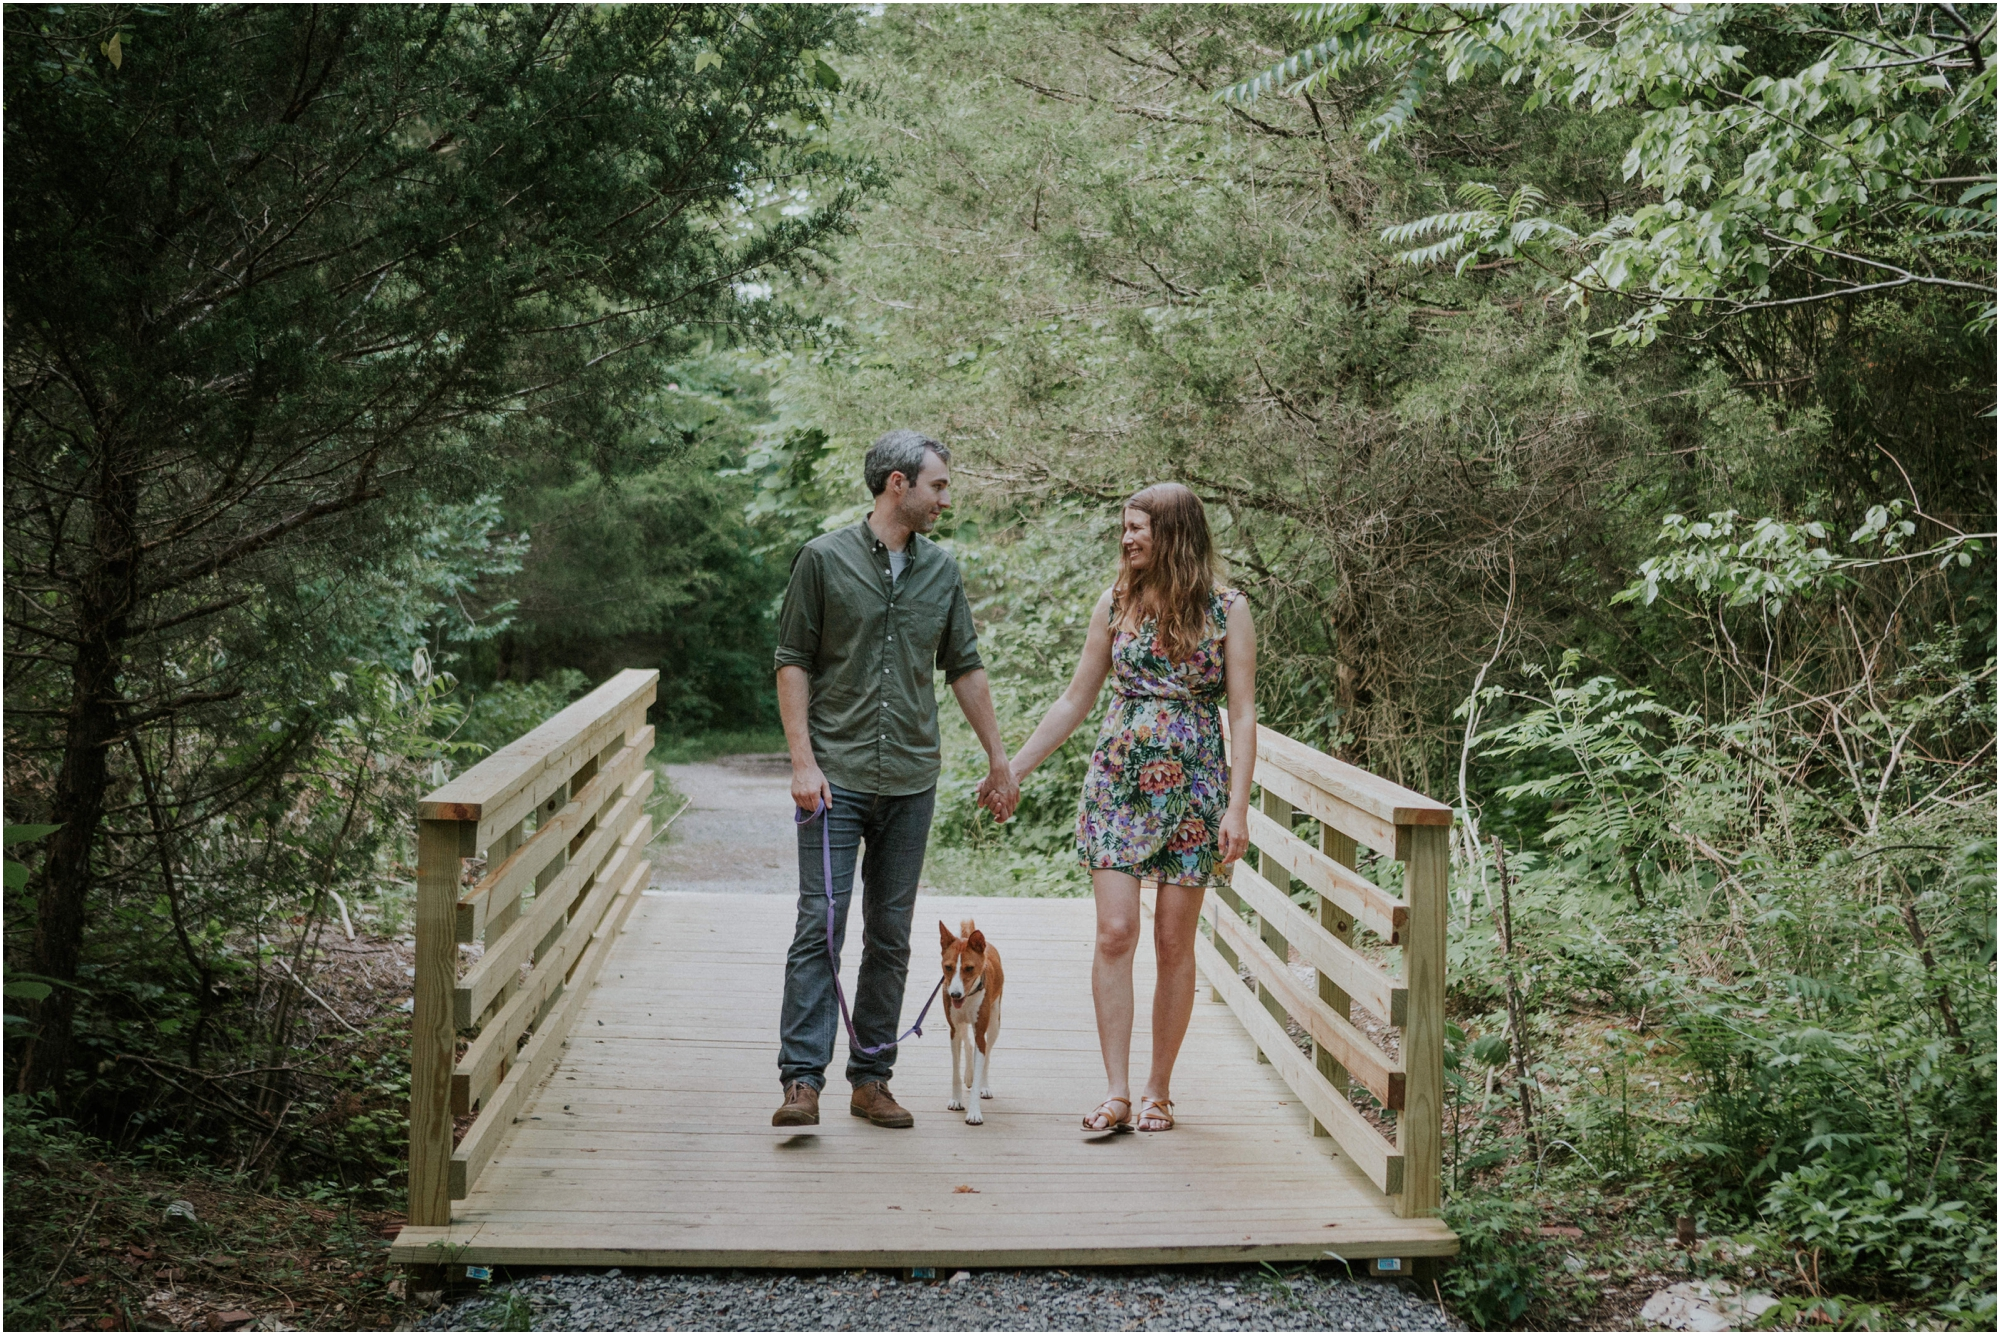 meads-quarry-ijams-nature-center-knoxville-tennessee-engagement-session-summer-northeast-tn-adventurous-outdoors-lake-katy-sergent_0026.jpg